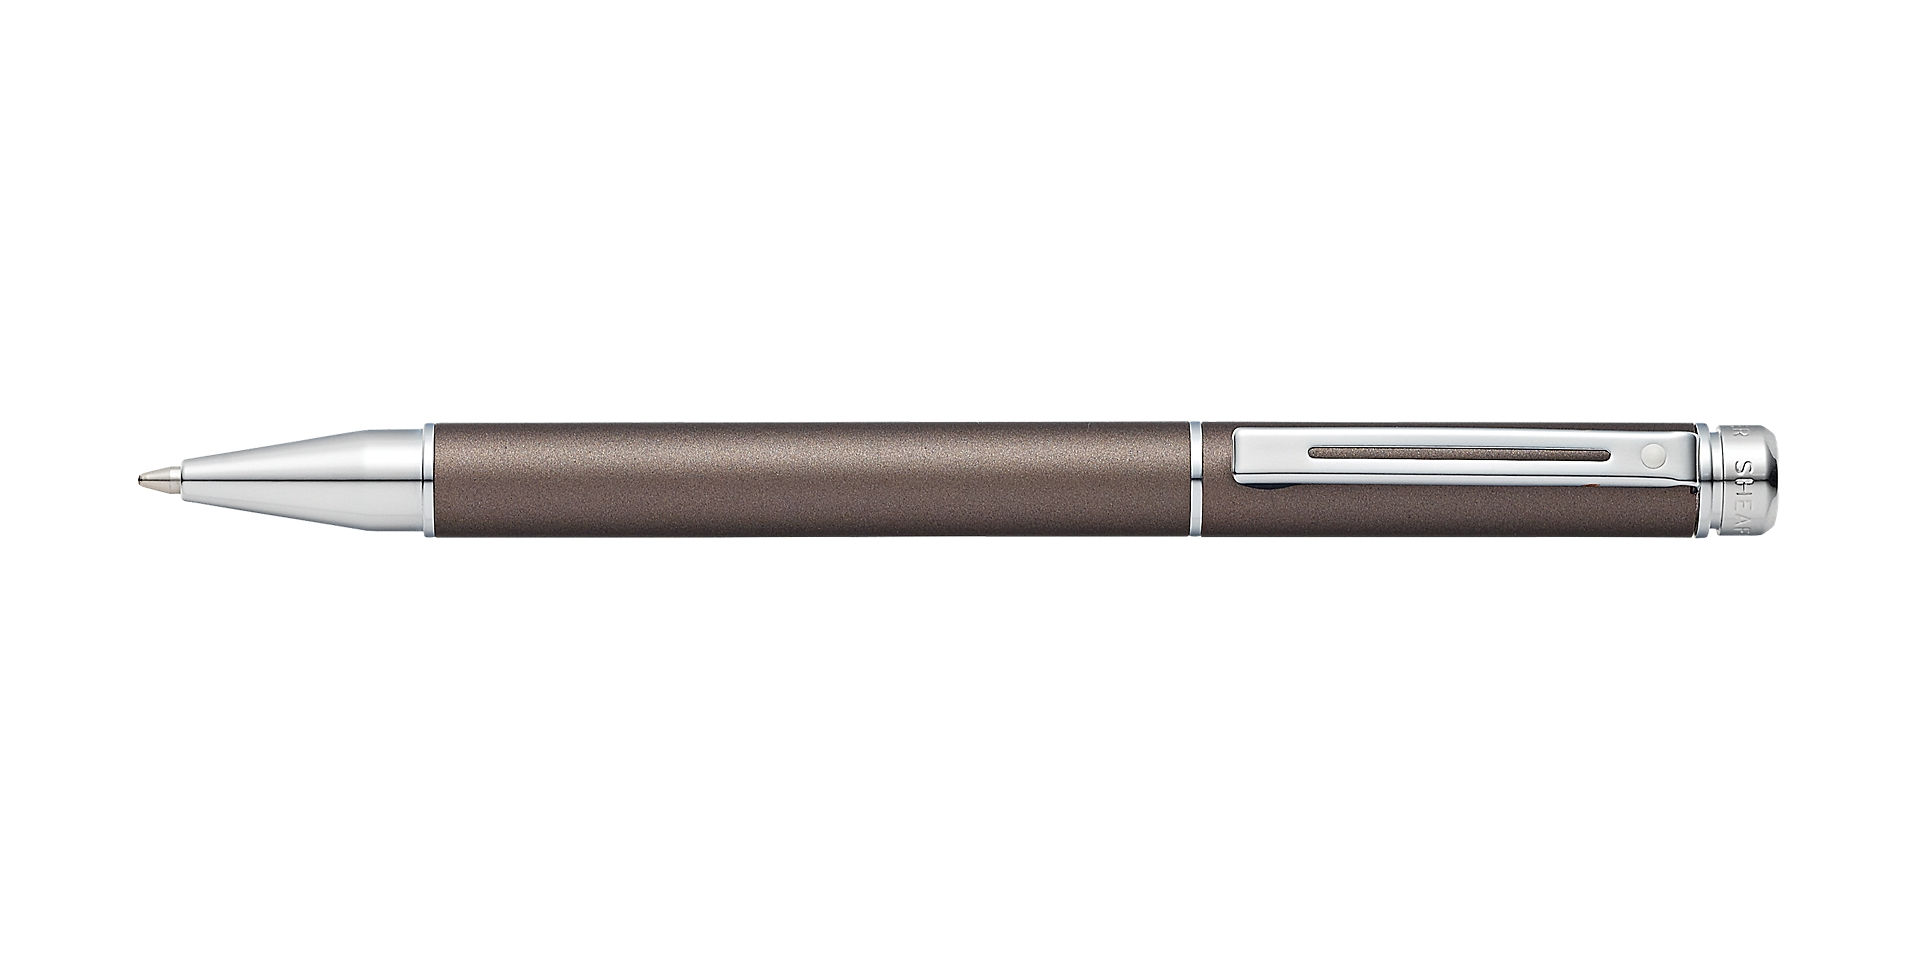 Cross Sheaffer 200 Matte Metallic Gray Ballpoint Pen Picture